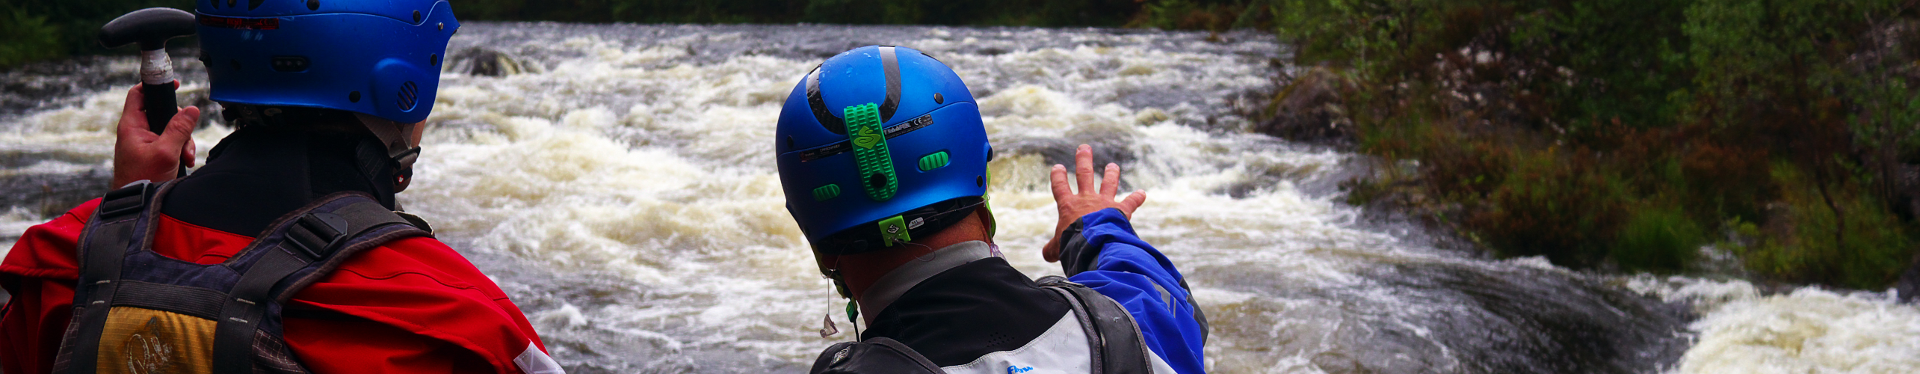 British Canoeing White Water Leader Training (formerly 4 Star) C1/OC1 and White Water Kayak @ Grandtully | Grandtully | Scotland | United Kingdom